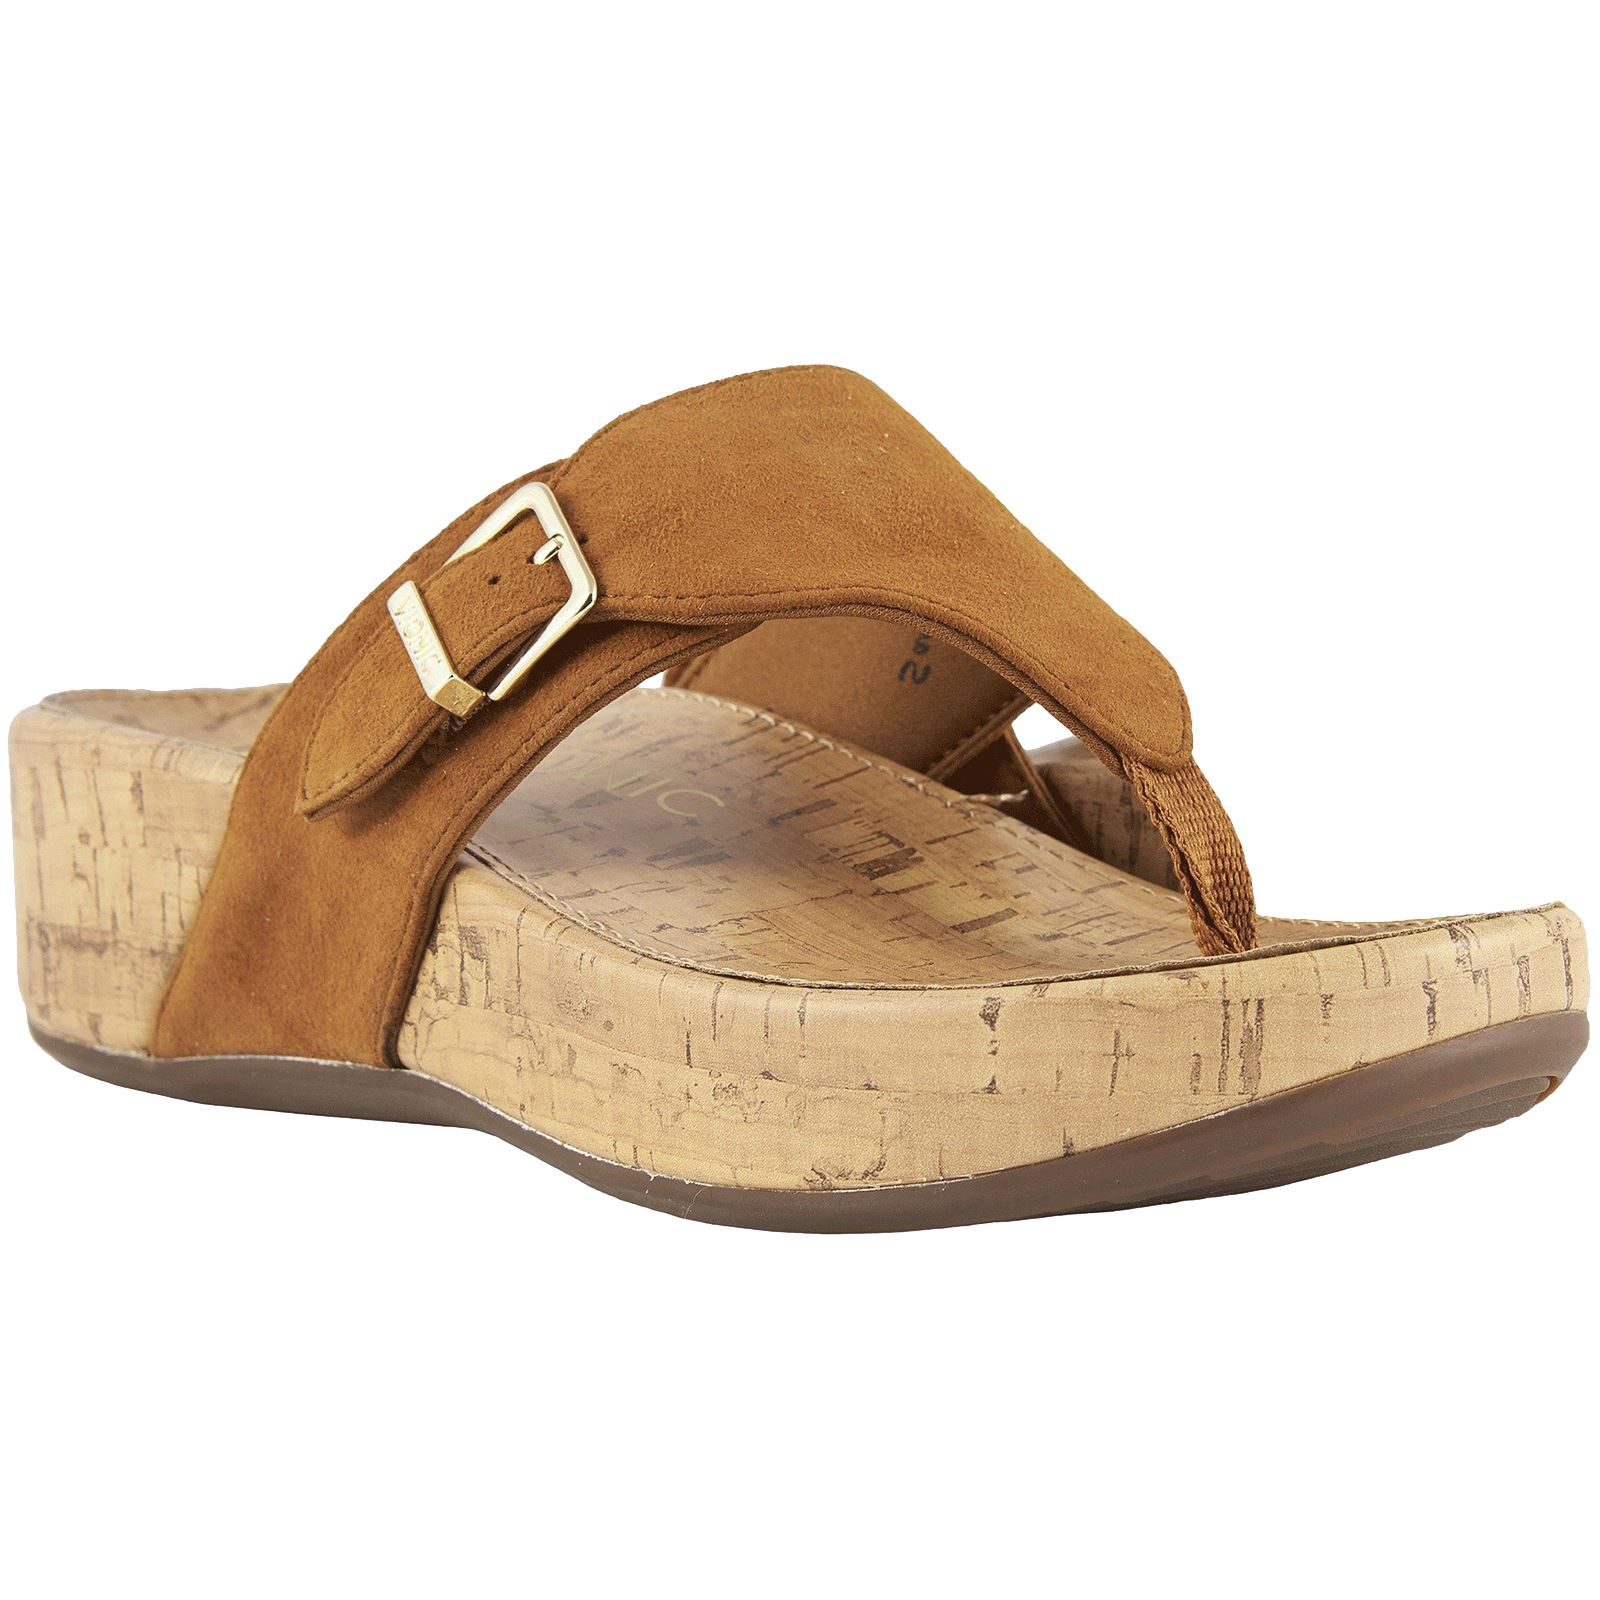 9bb113c62 Details about Vionic Pacific Marbella Caramel Womens Suede Post-Toe Slip-On Wedge  Sandals